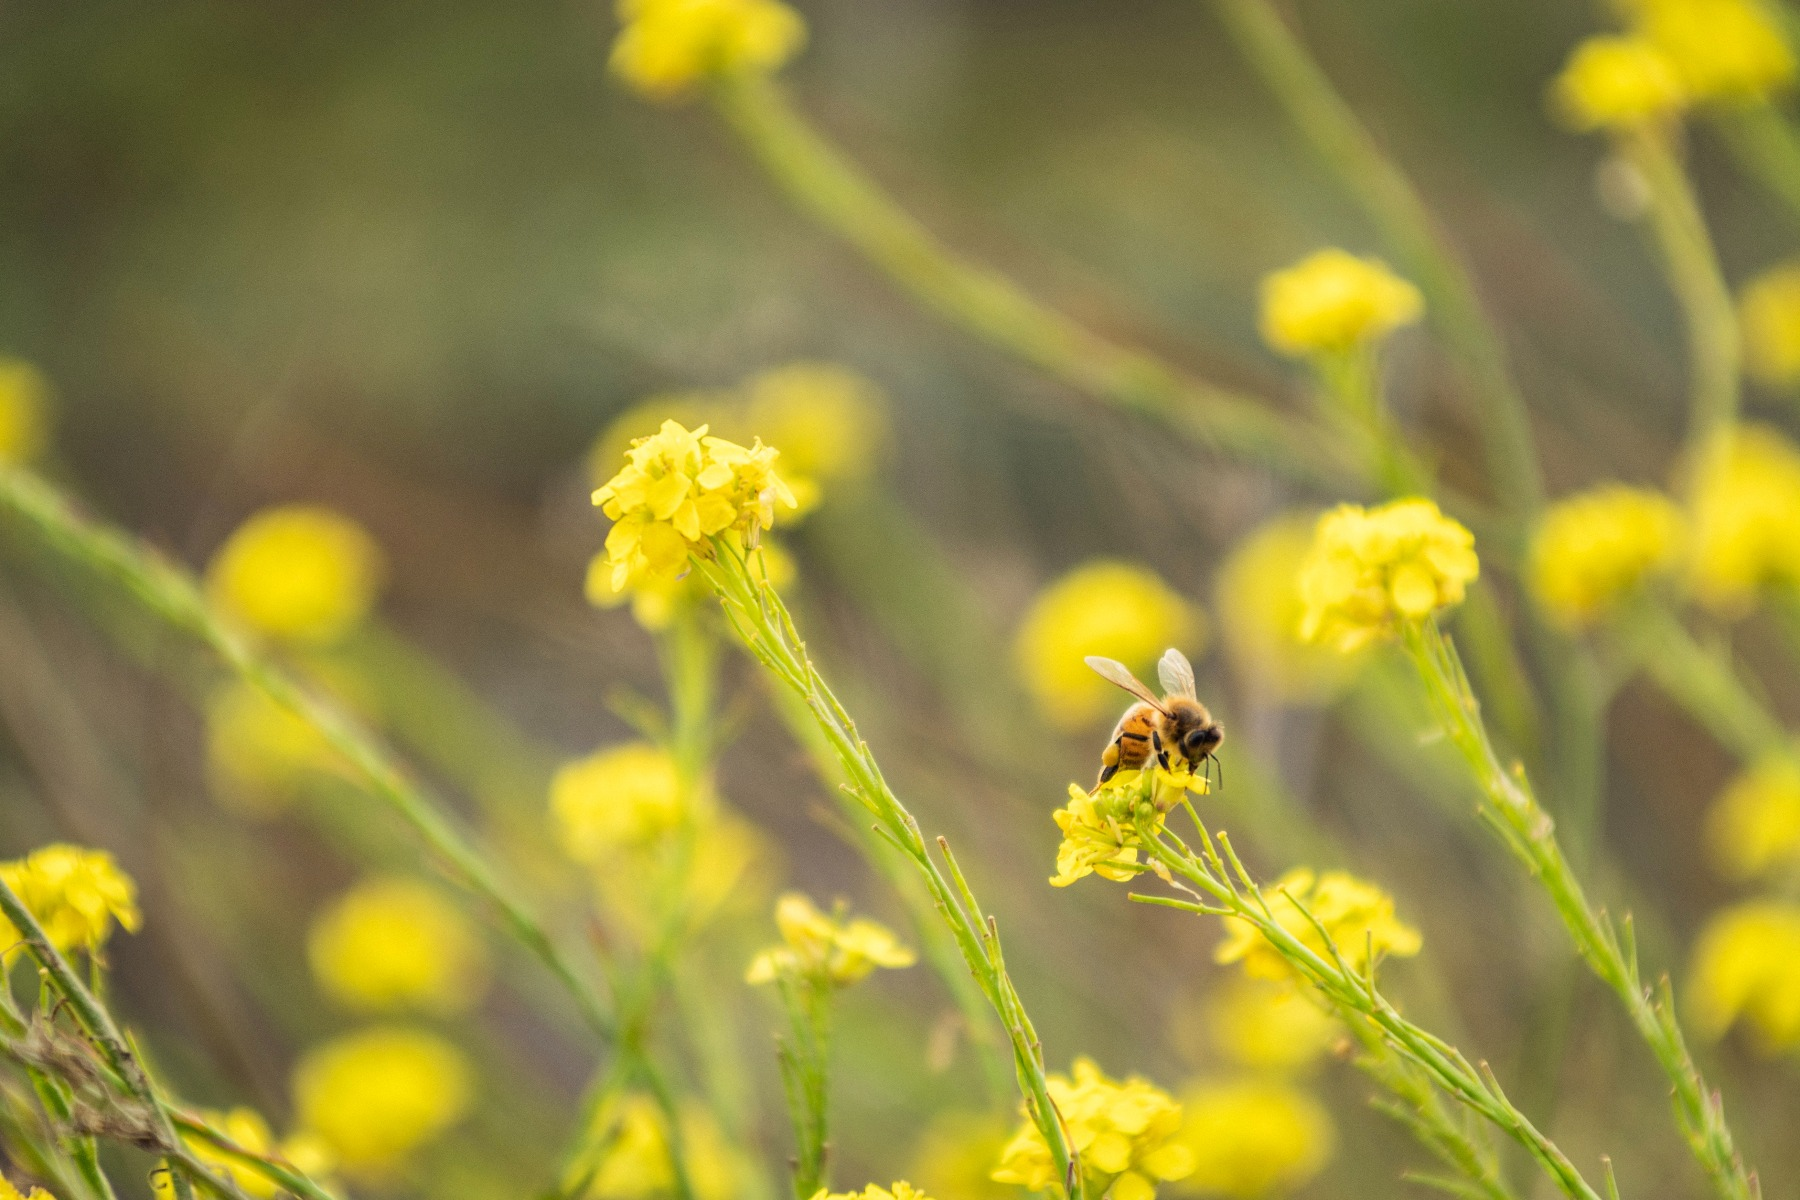 Bee on yellow and green flowers